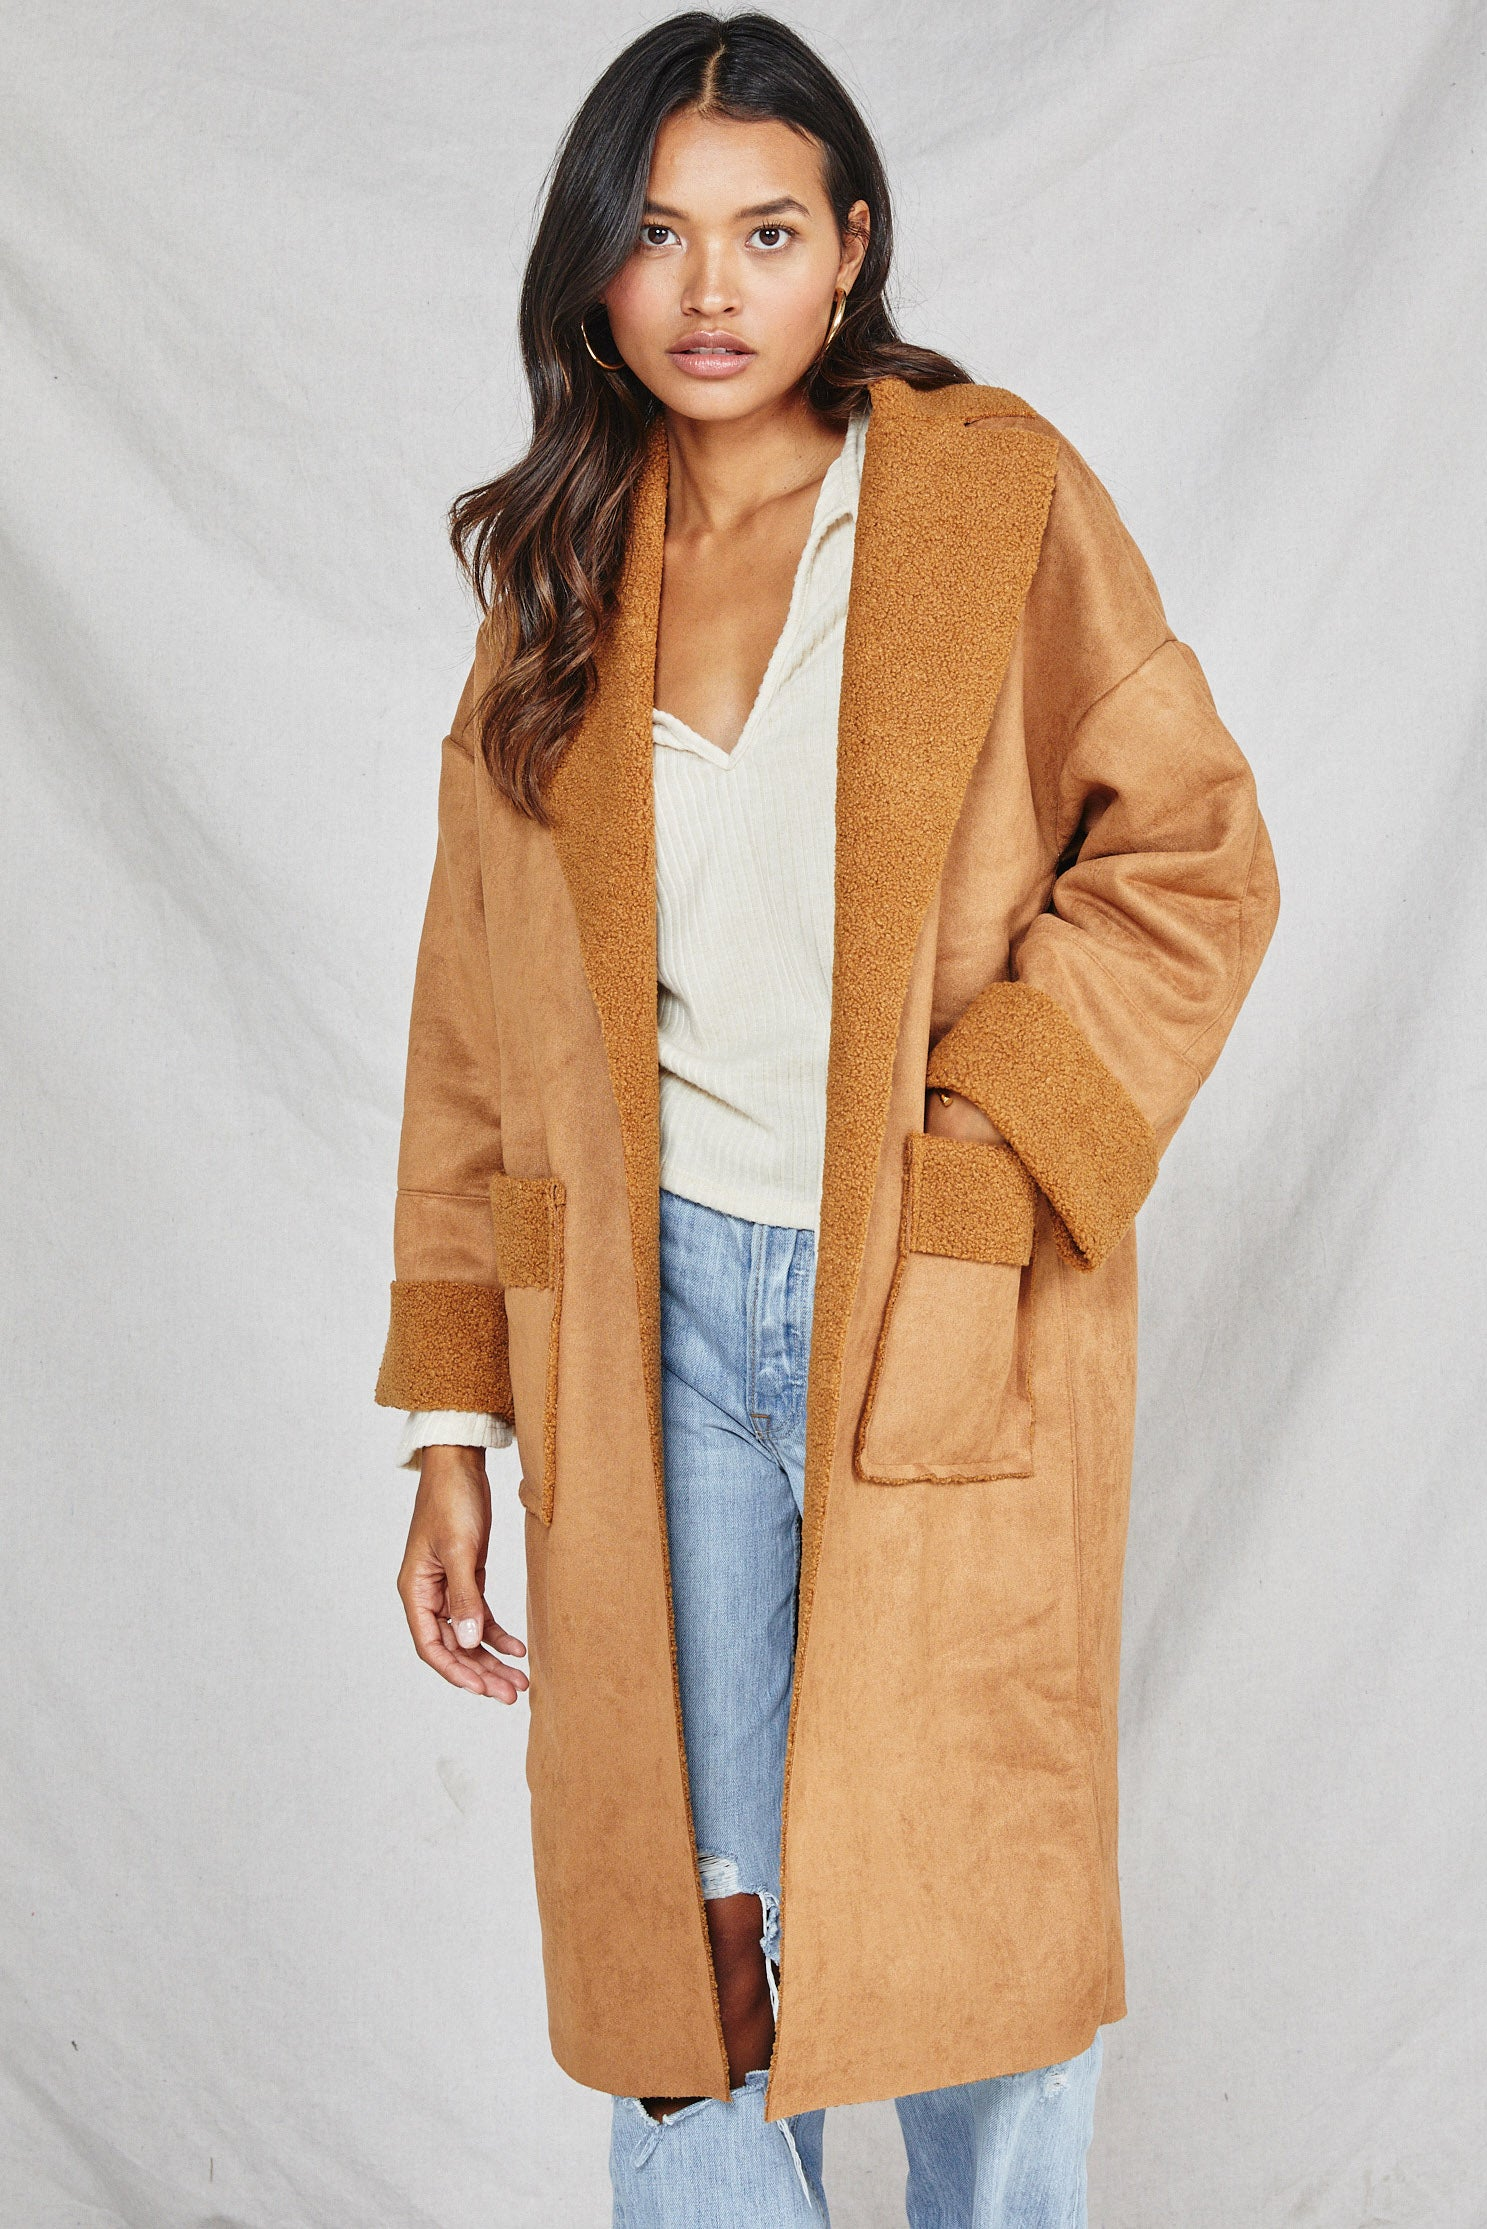 Two Hearts Trench